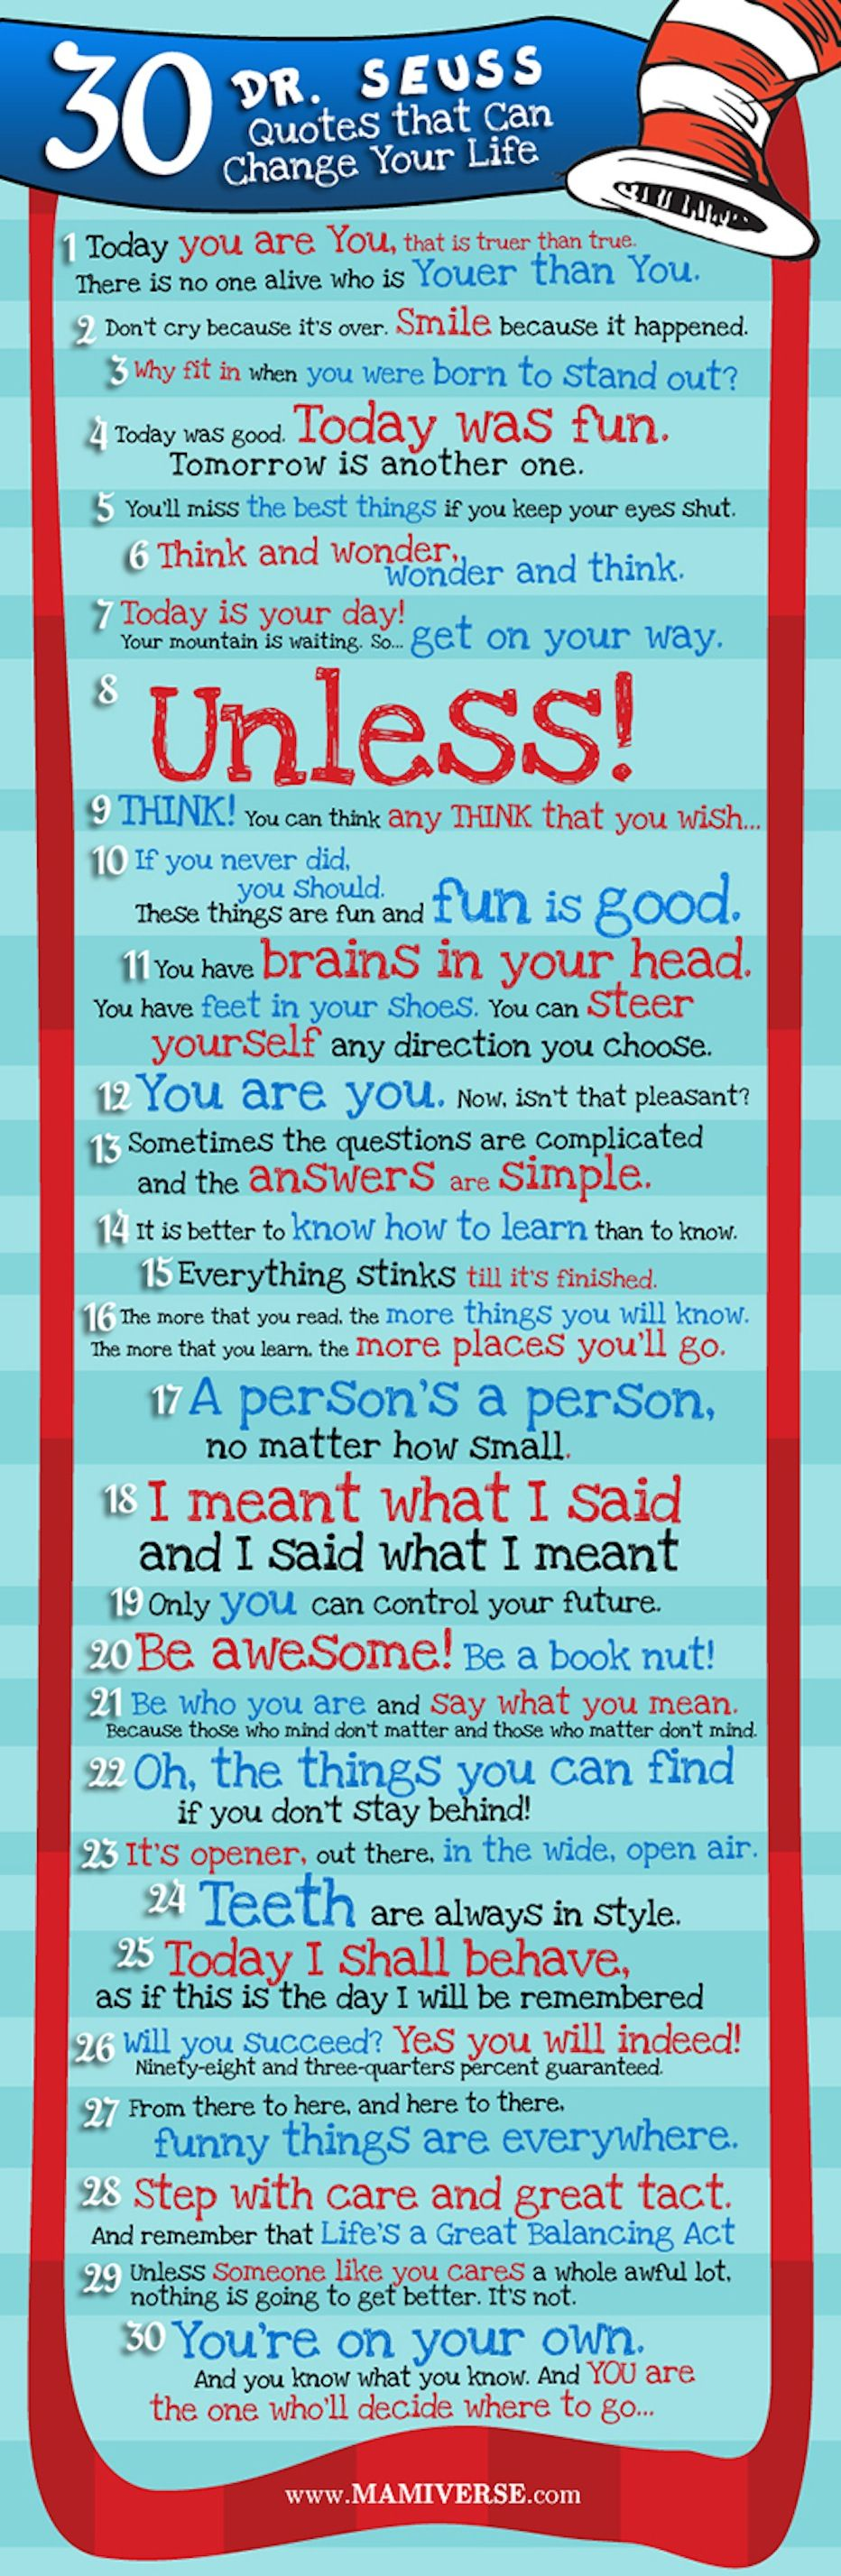 30 Classic Dr. Seuss Quotes That Will Change Your Life. Again.    Sheppard Diamond Virtual Office  sheppardVA@gmail.com  Virtually getting it done.